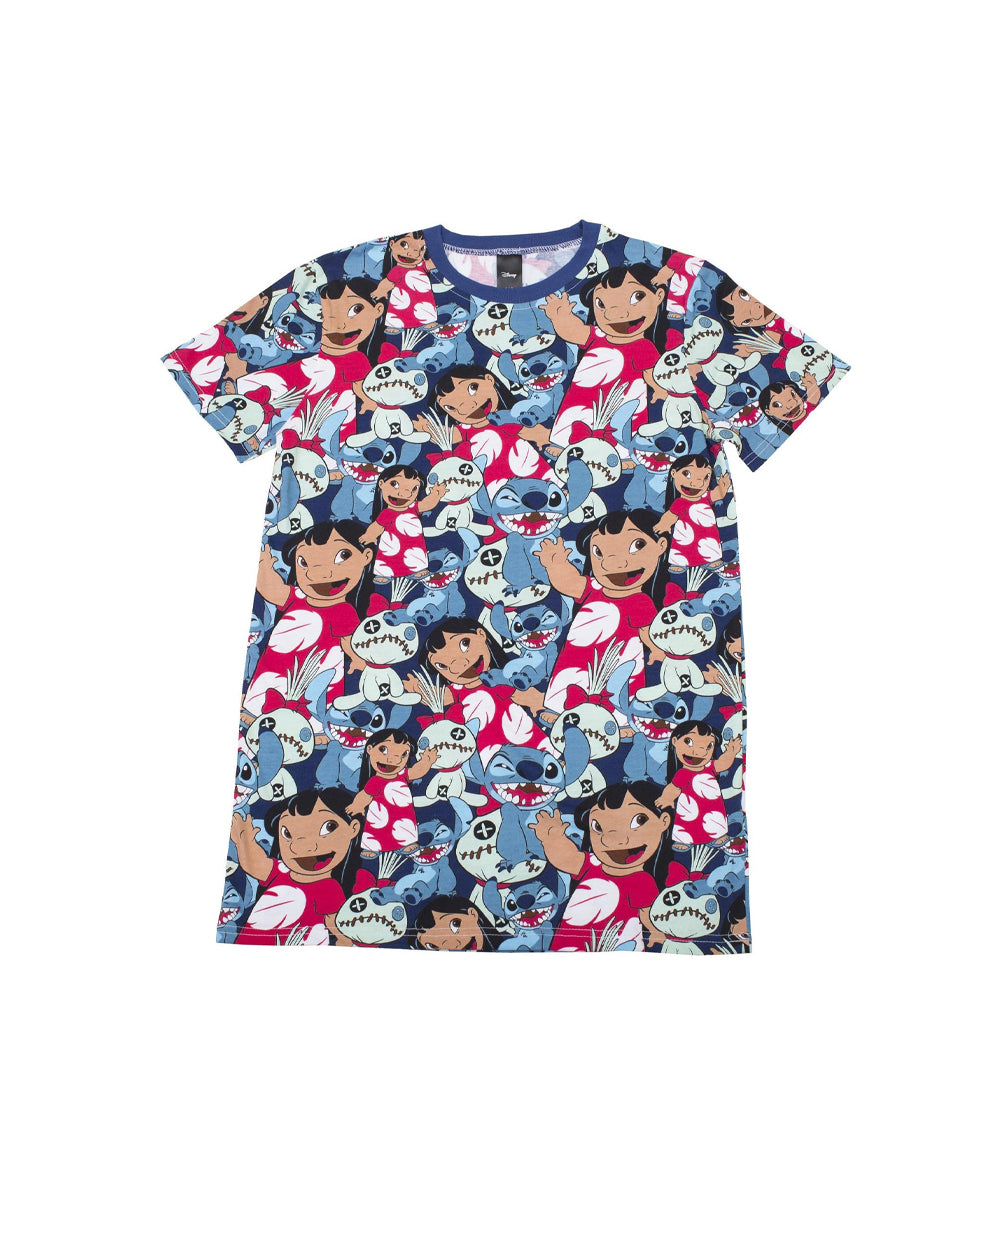 Cakeworthy - Disney Lilo & Stitch AOP Unisex Tee - The Pink a la Mode